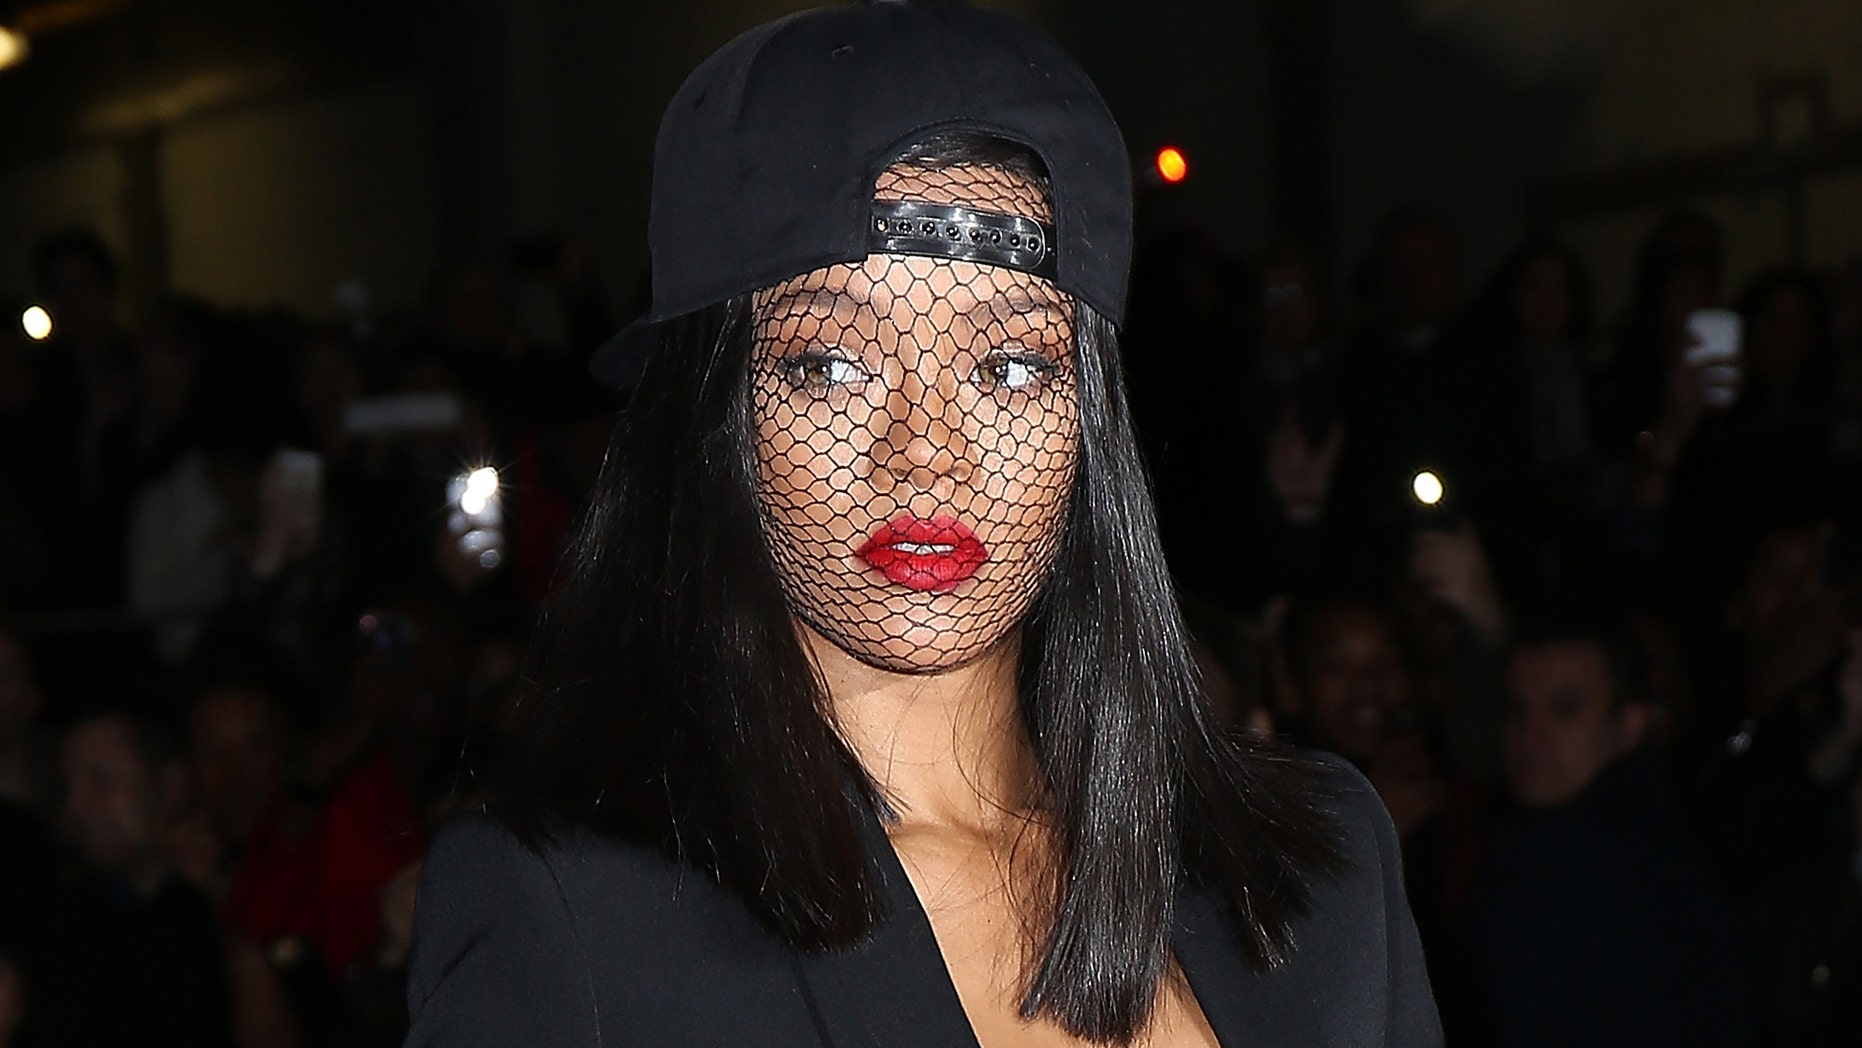 PARIS, FRANCE - MARCH 02:  Rihanna attends the Givenchy show as part of the Paris Fashion Week Womenswear Fall/Winter 2014-2015 on March 2, 2014 in Paris, France.  (Photo by Pierre Suu/Getty Images)